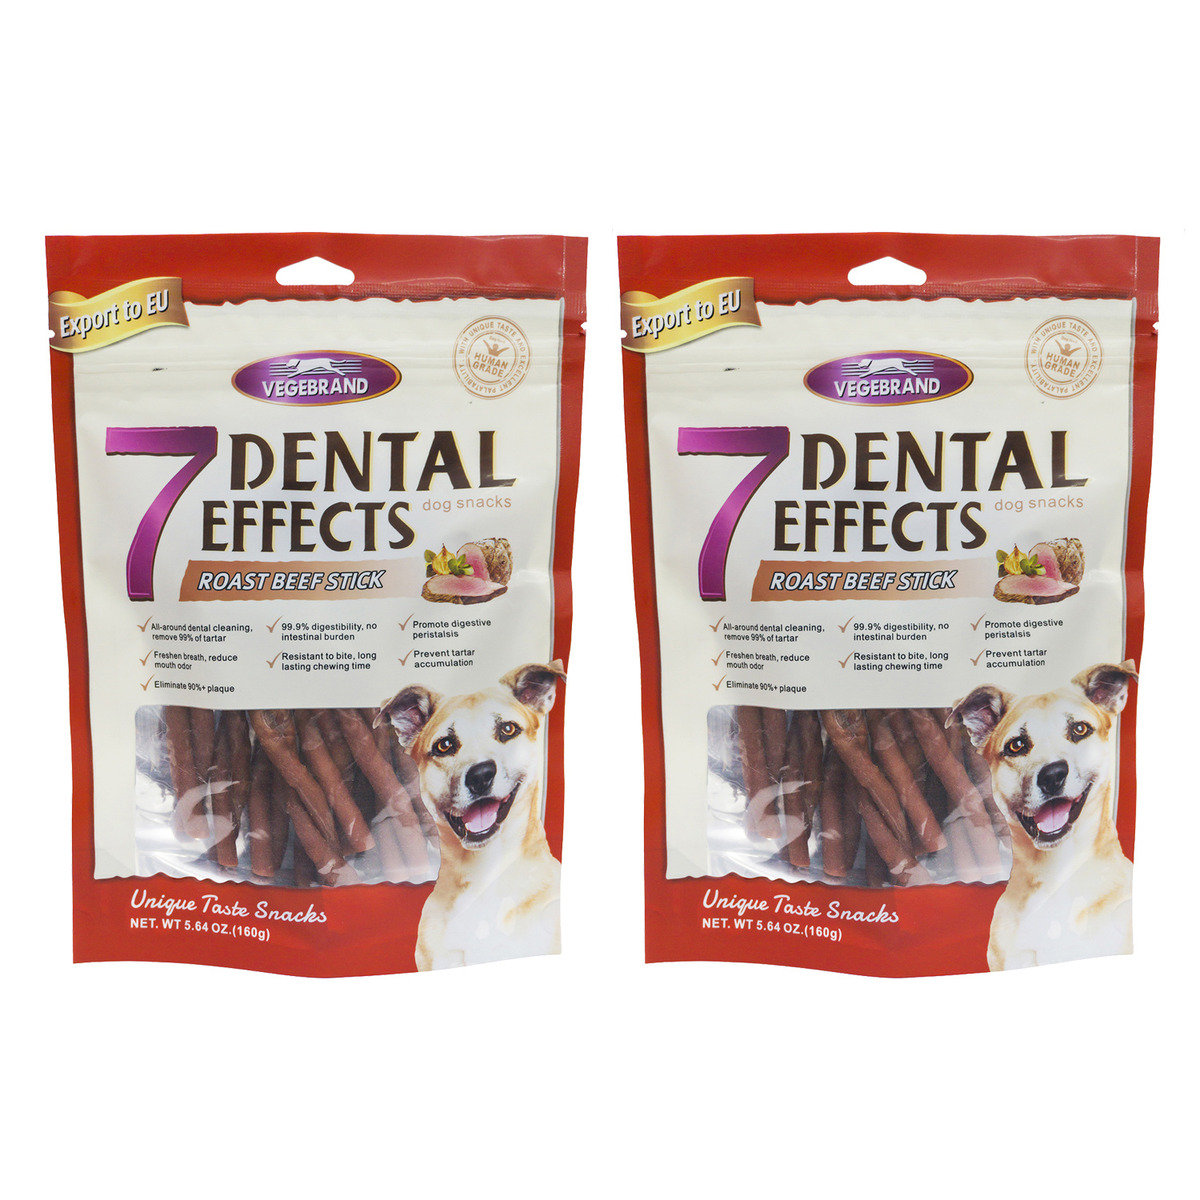 7 Dental Effects roasted beef stick x2 (VBD-0808-2)